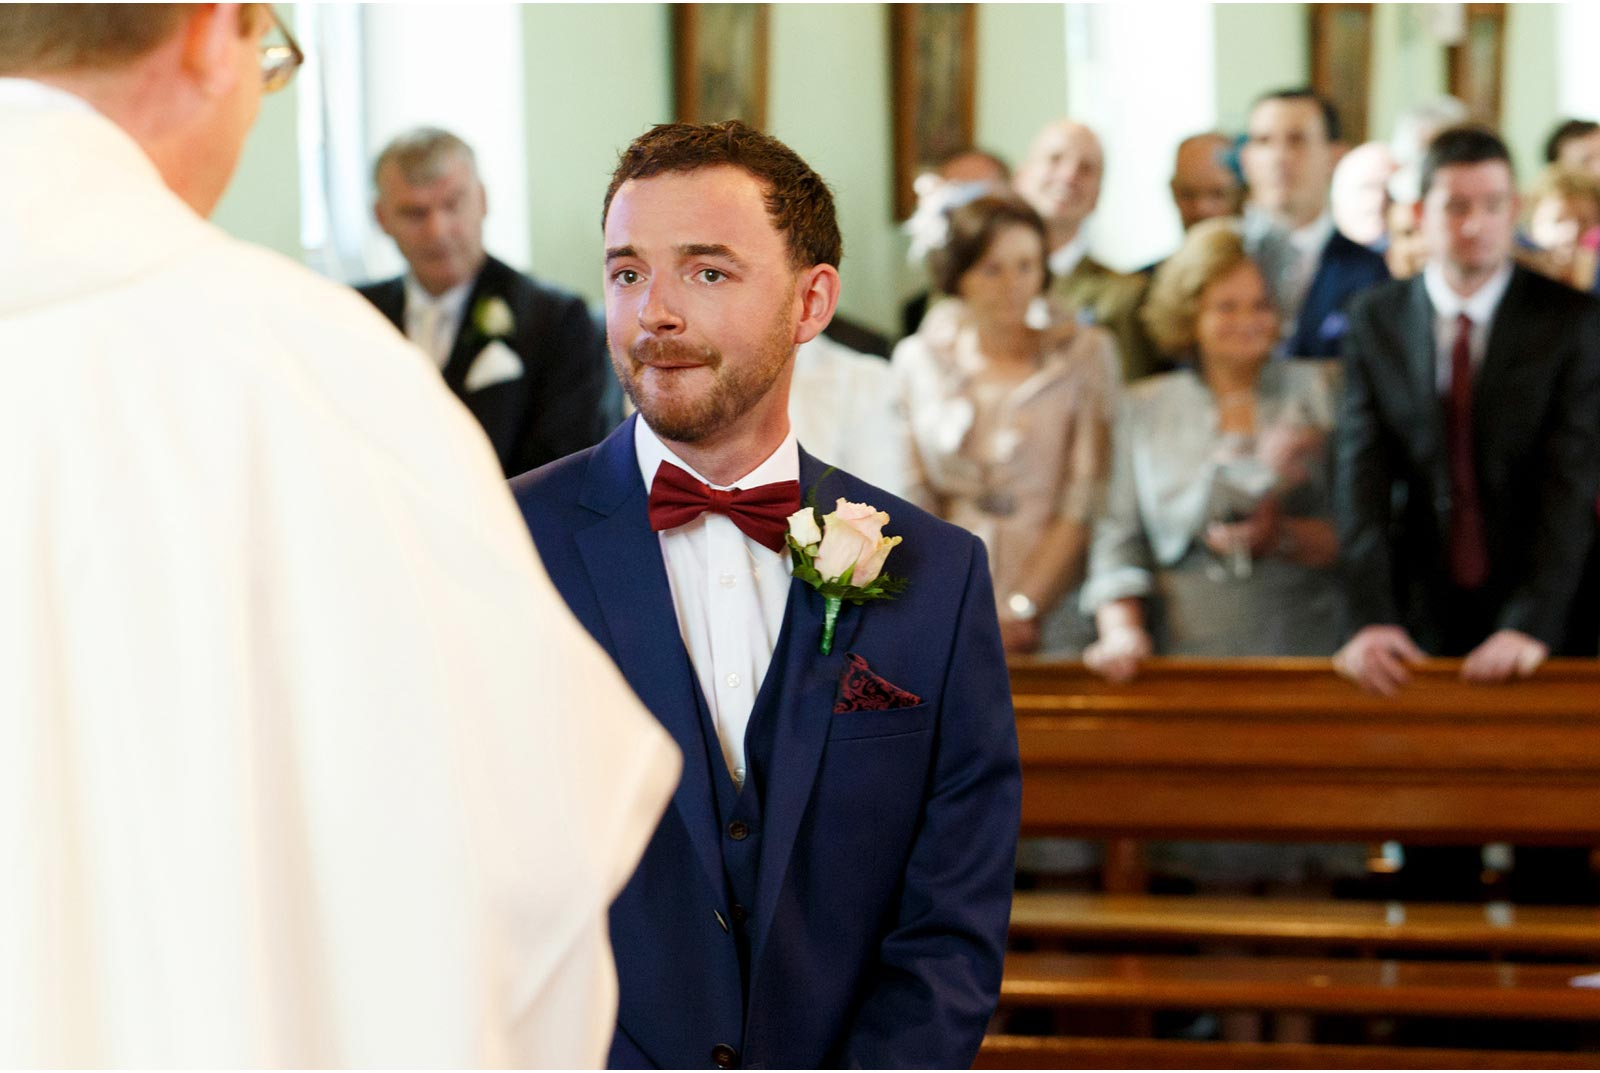 emotional groom has just caught a glimpse of his bride